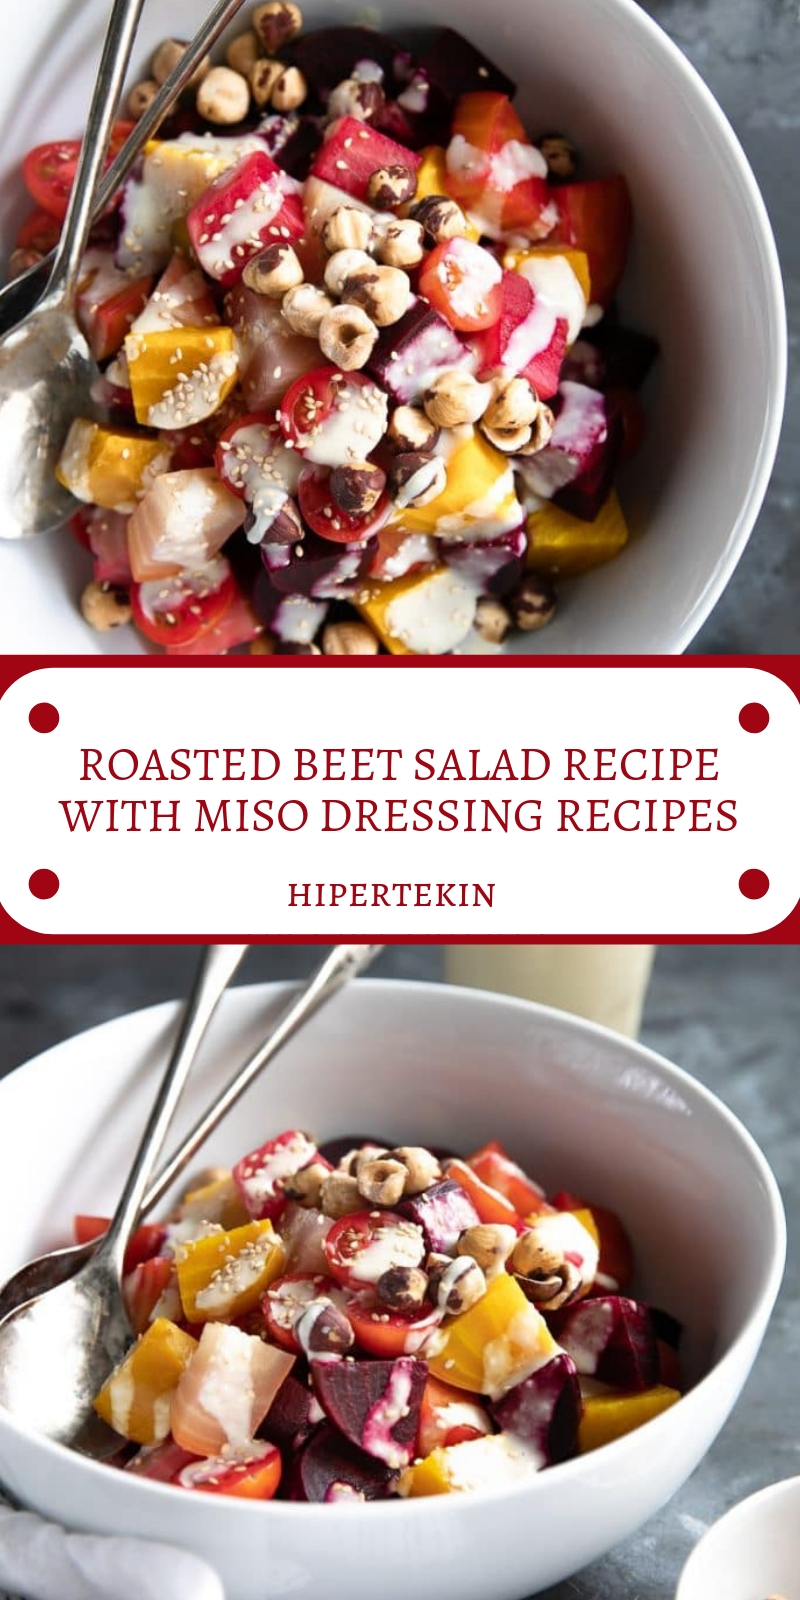 ROASTED BEET SALAD RECIPE WITH MISO DRESSING RECIPES